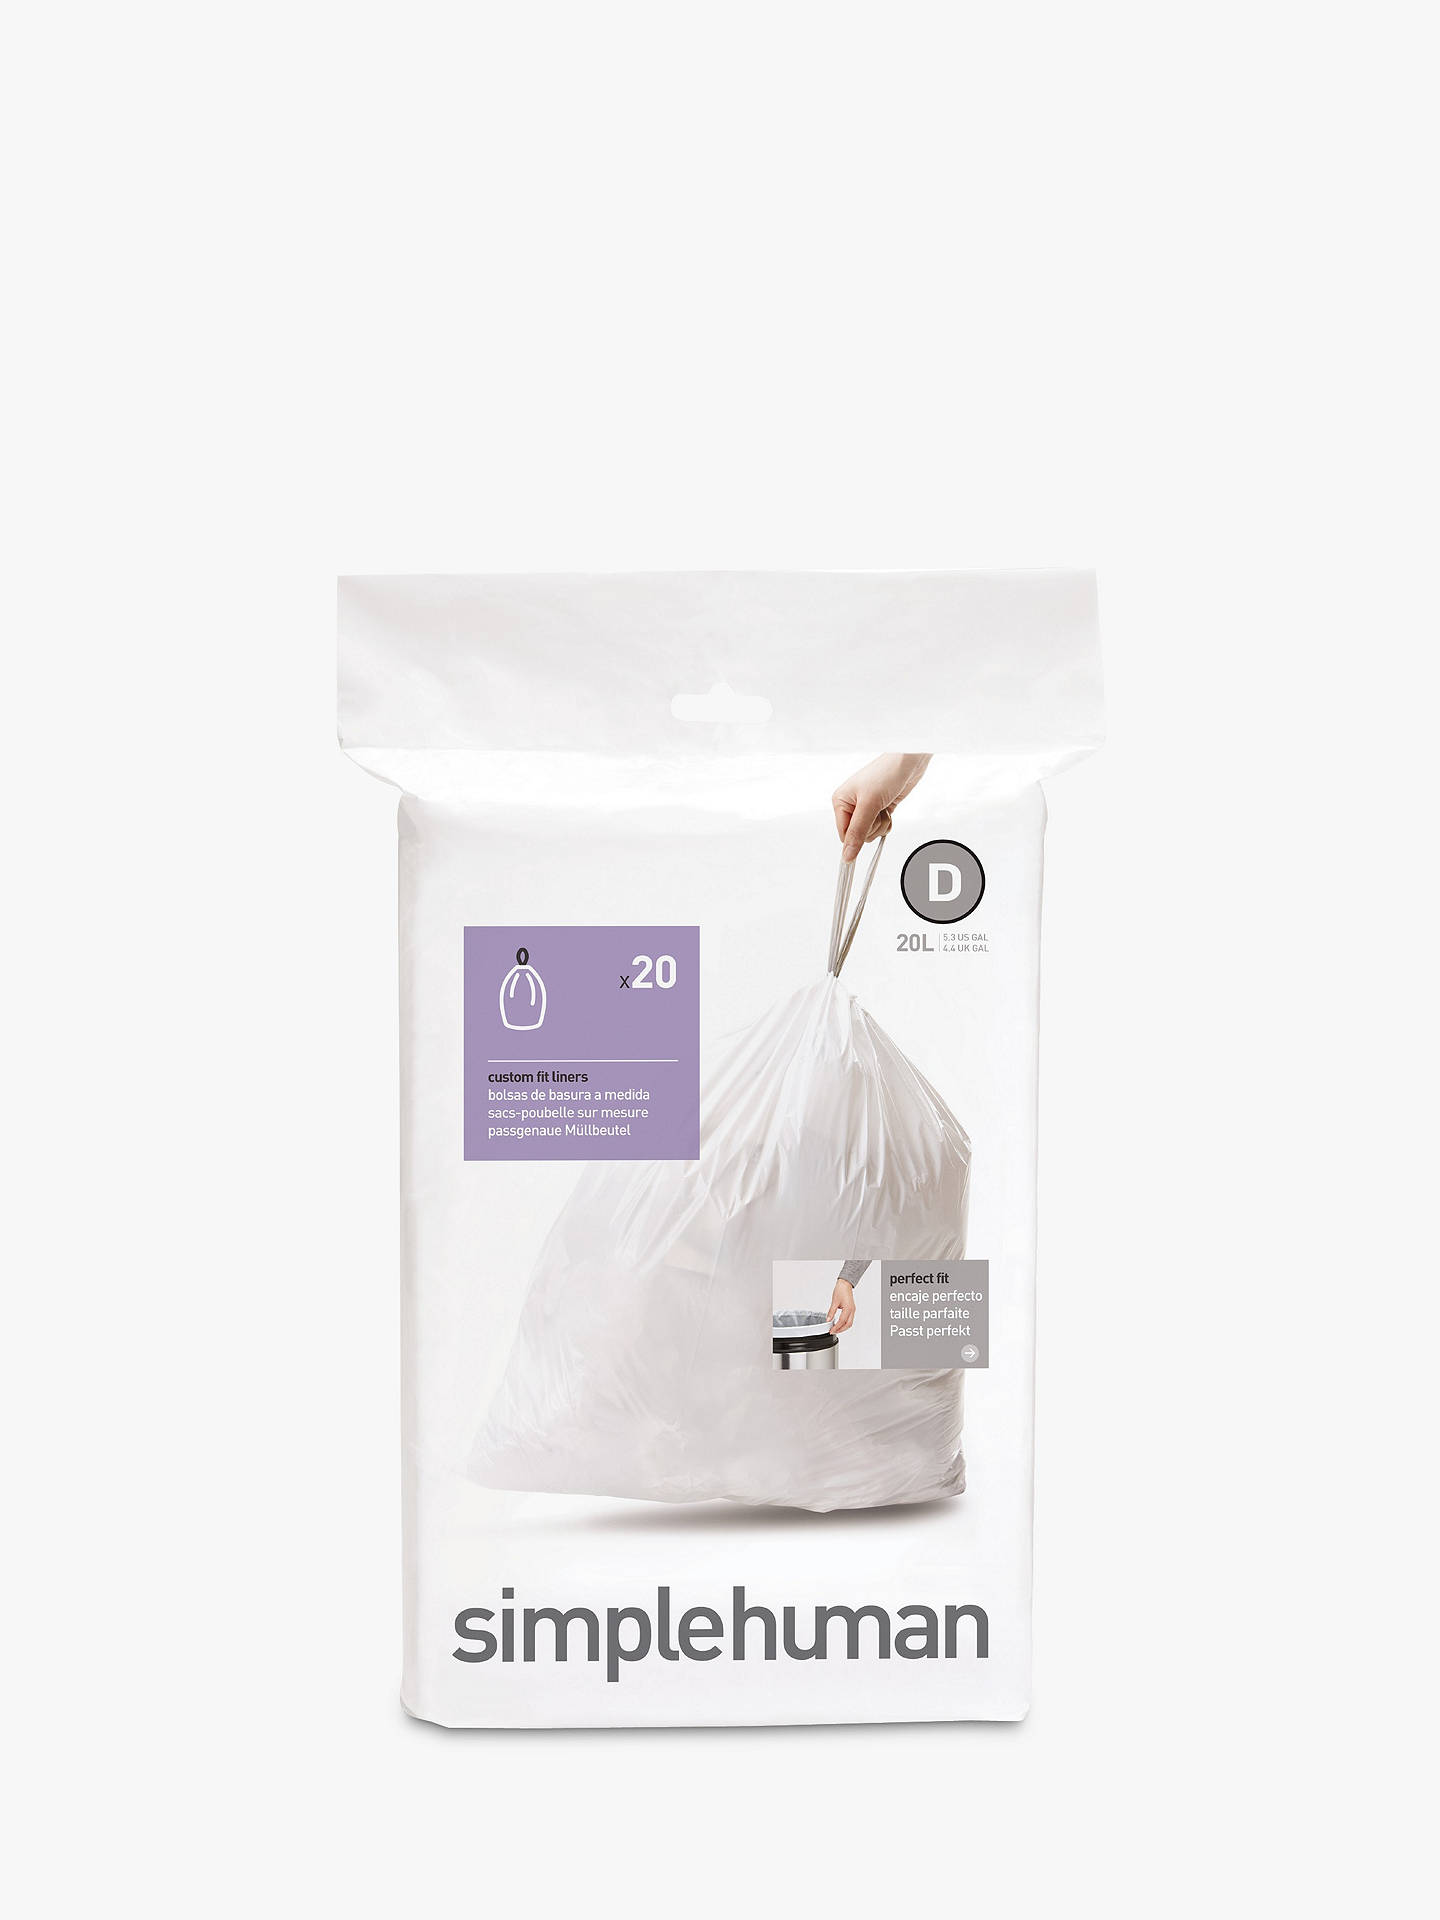 Buysimplehuman Bin Liners, Size D, Pack of 20 Online at johnlewis.com